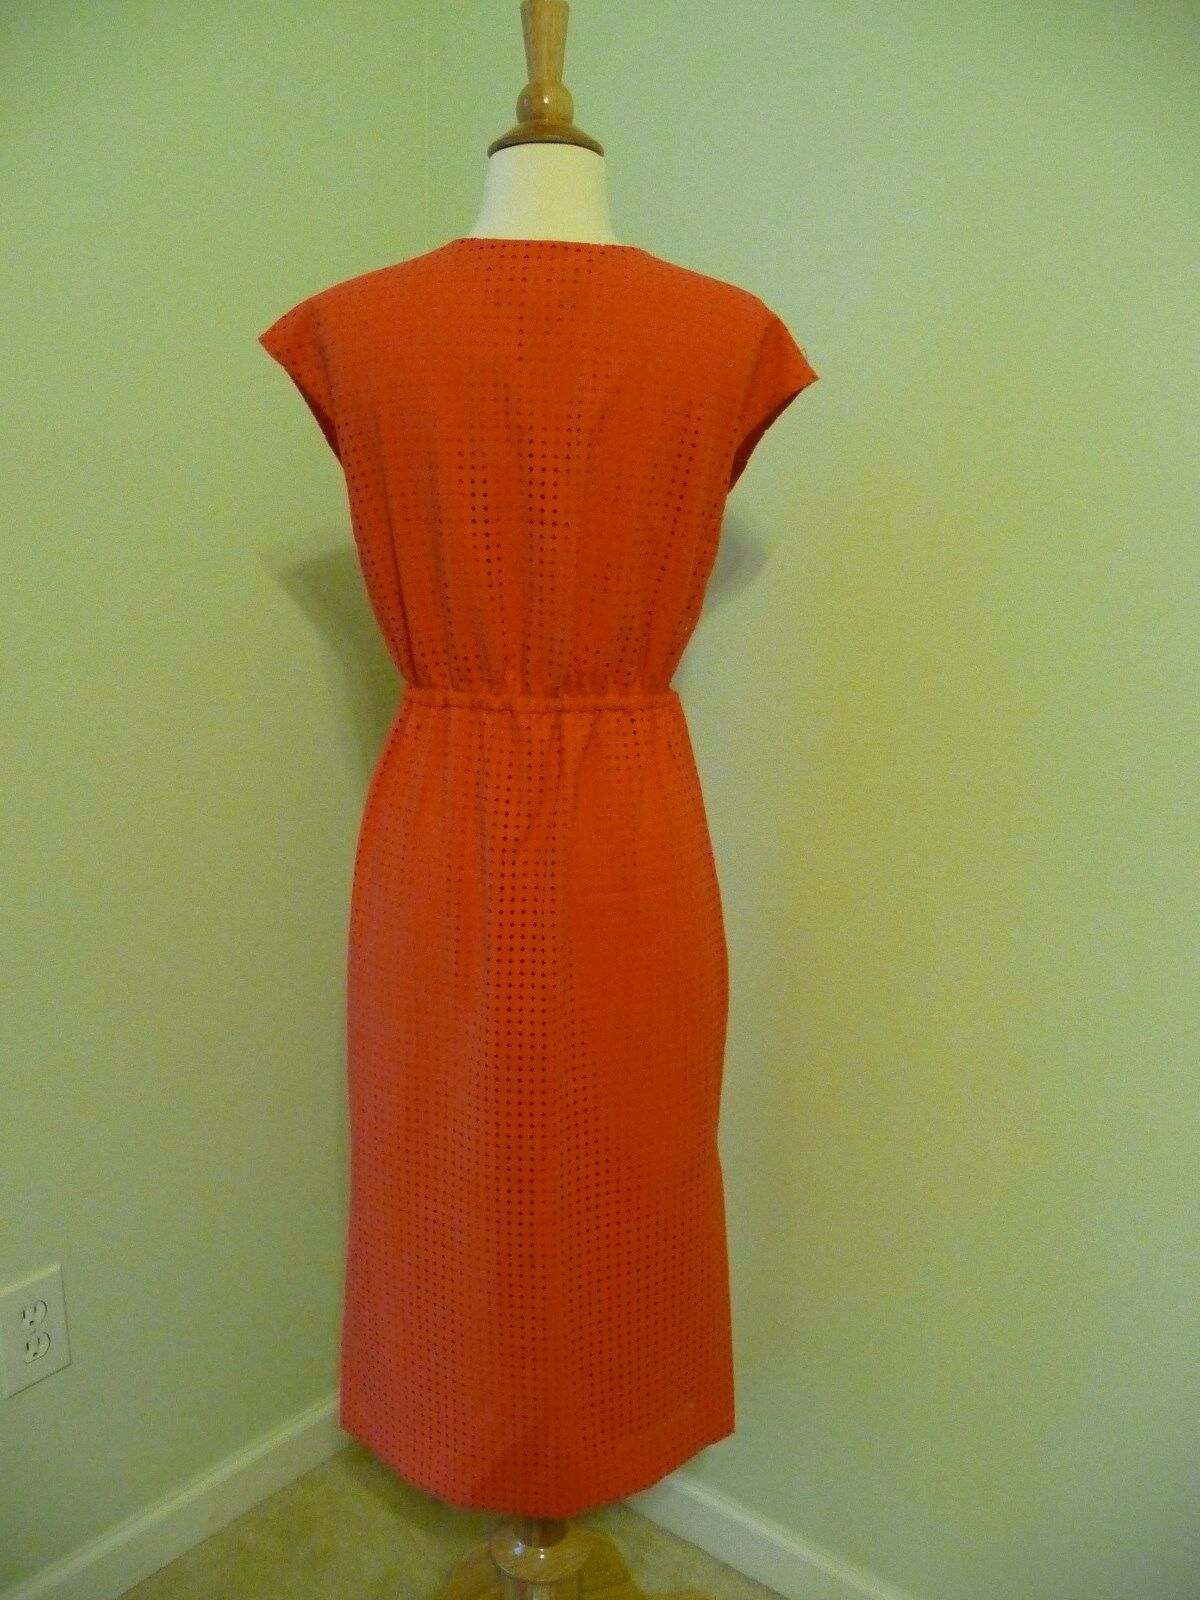 NEW J.CREW PERFORATED DRAPERY CREPE DRESS, SWEET PERSIMMON SZ SZ SZ 2, B9887,  158.00 cf7536